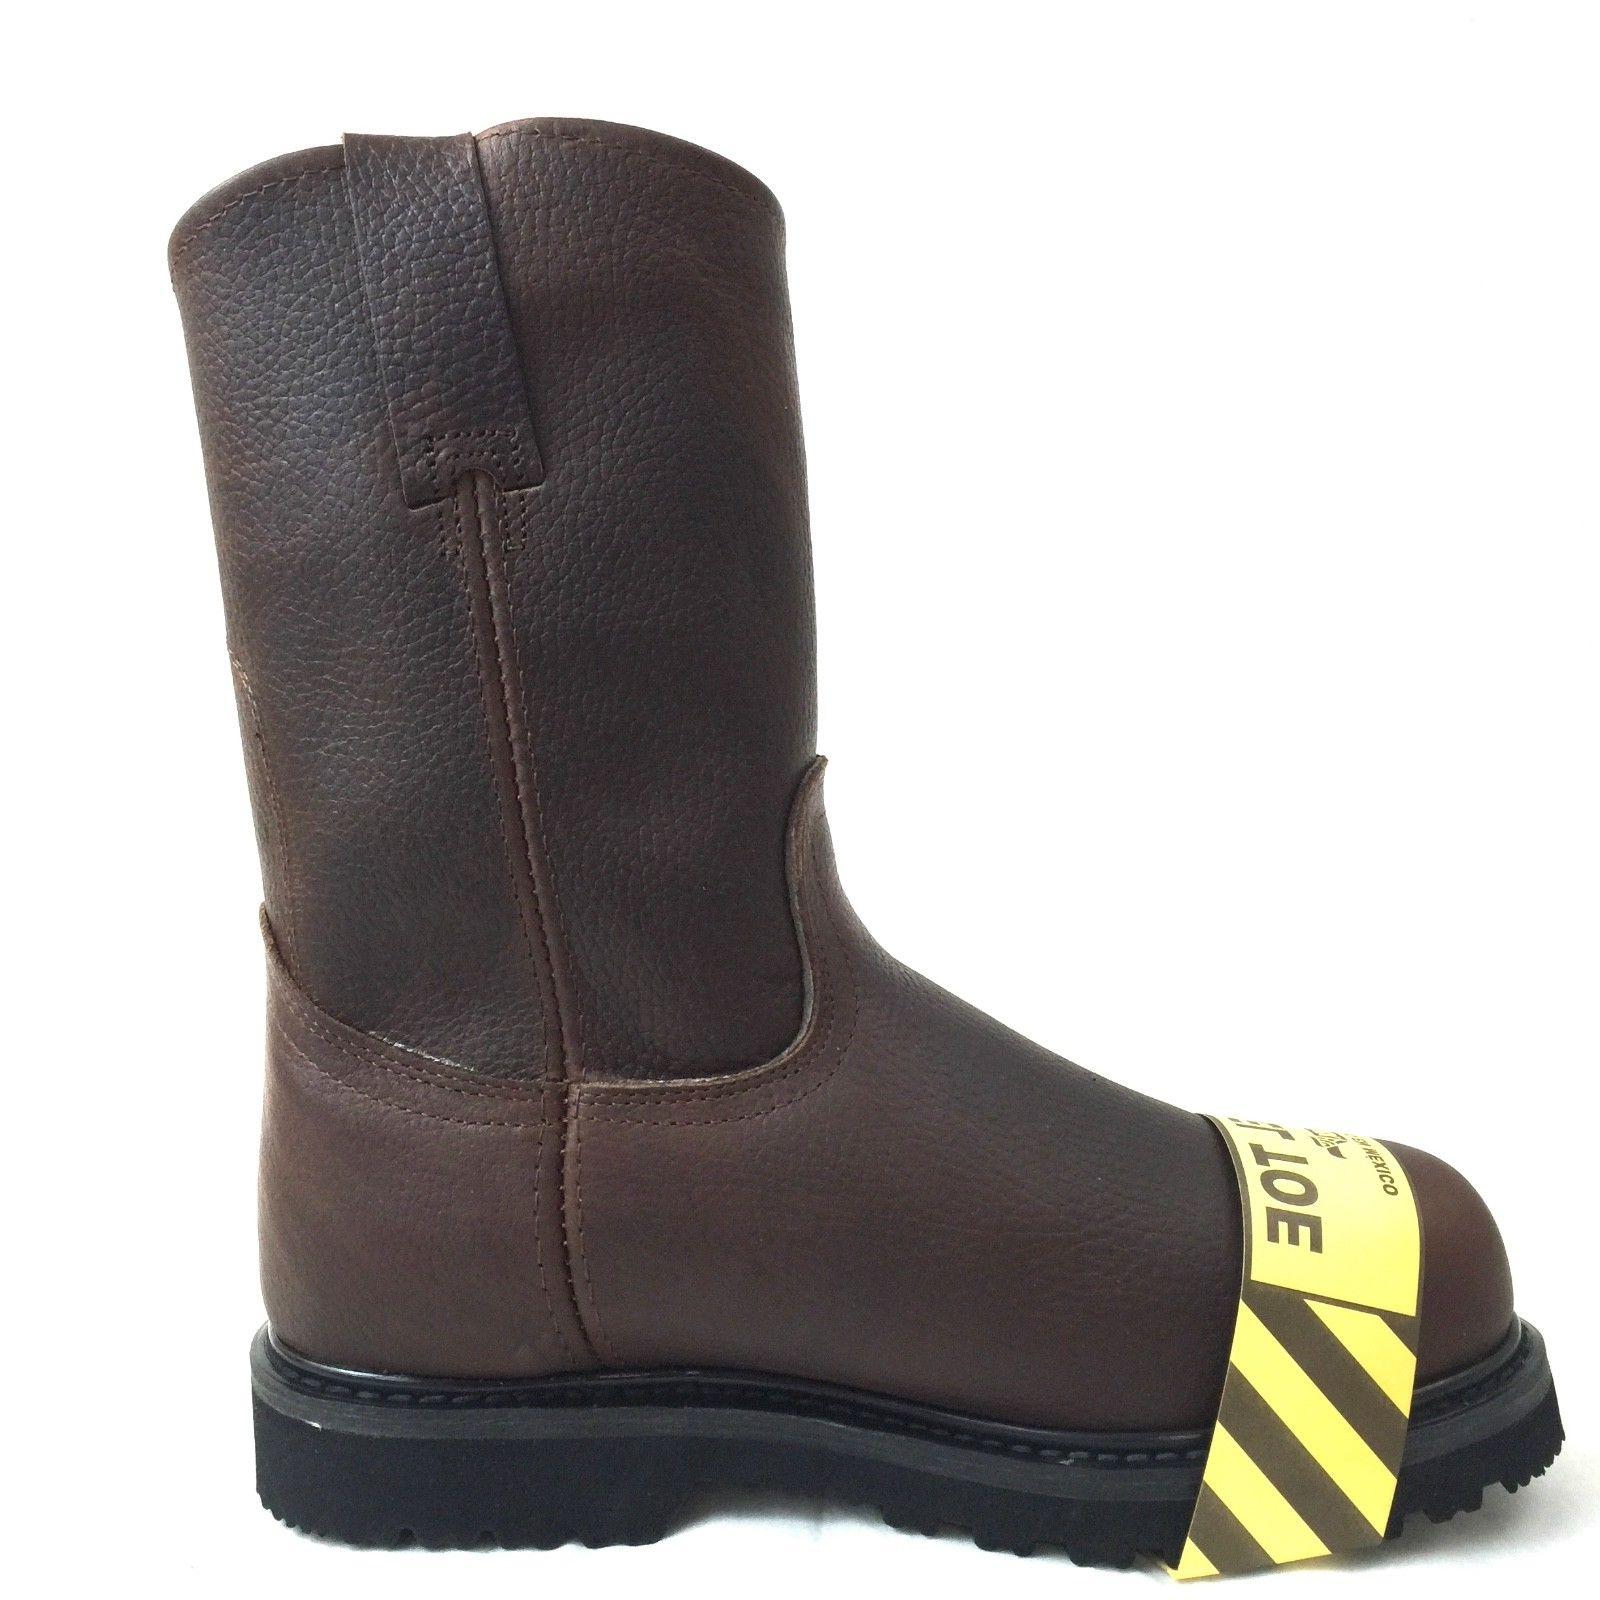 MEN'S STEEL TOE BOOTS ON SAFETY GENUINE OIL BROWN